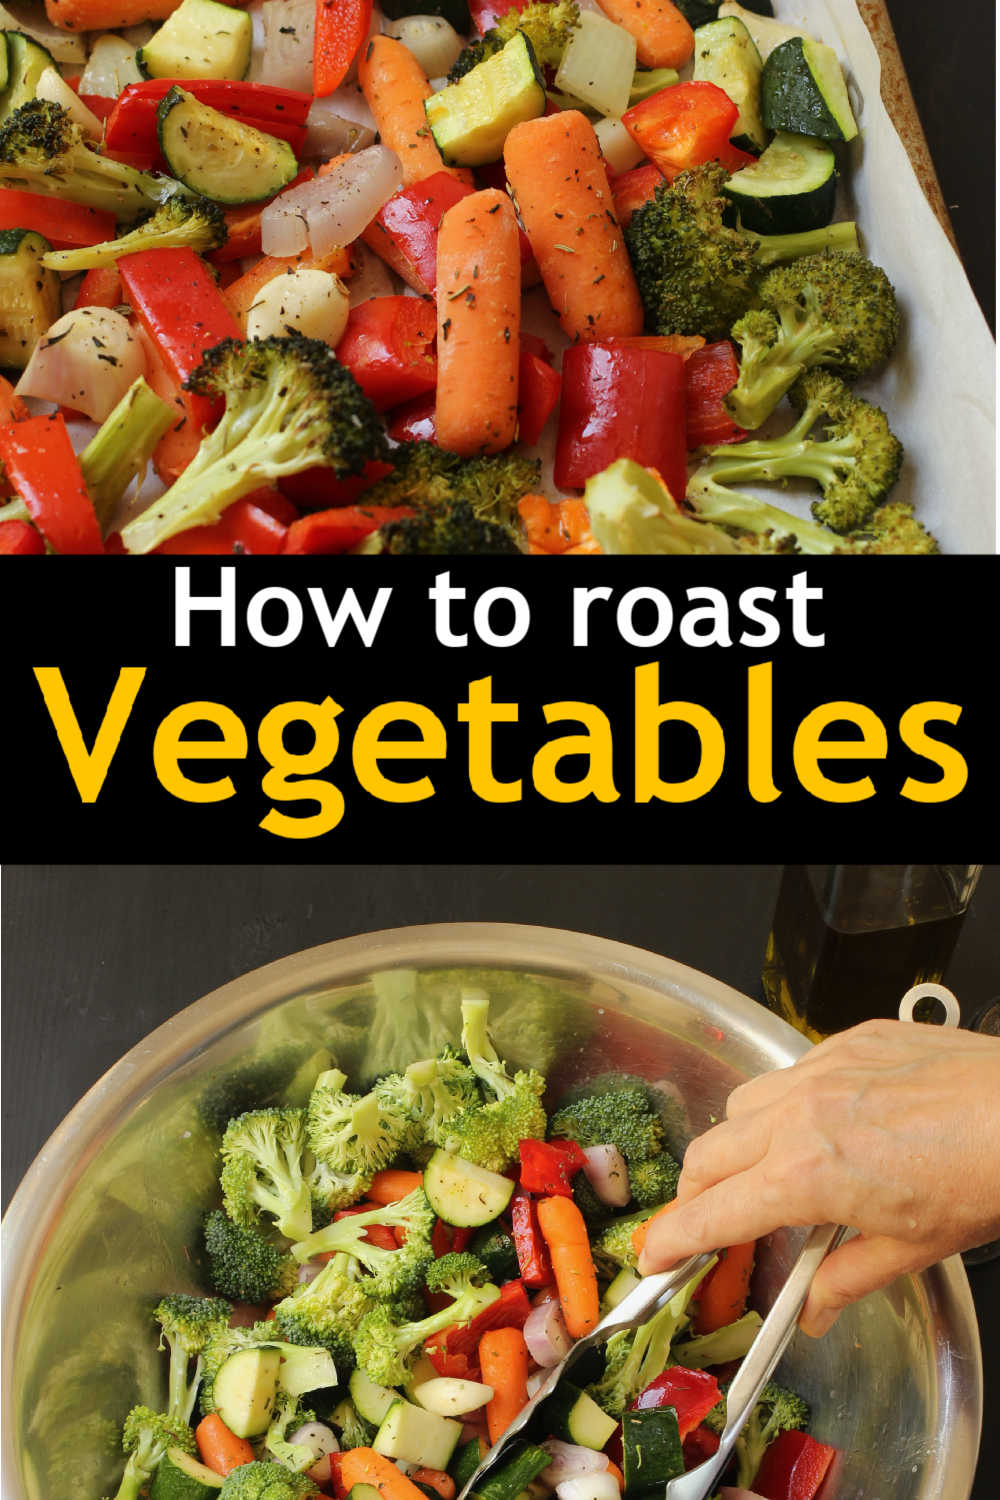 A bowl of vegetables to roast next to pan of roasted veg